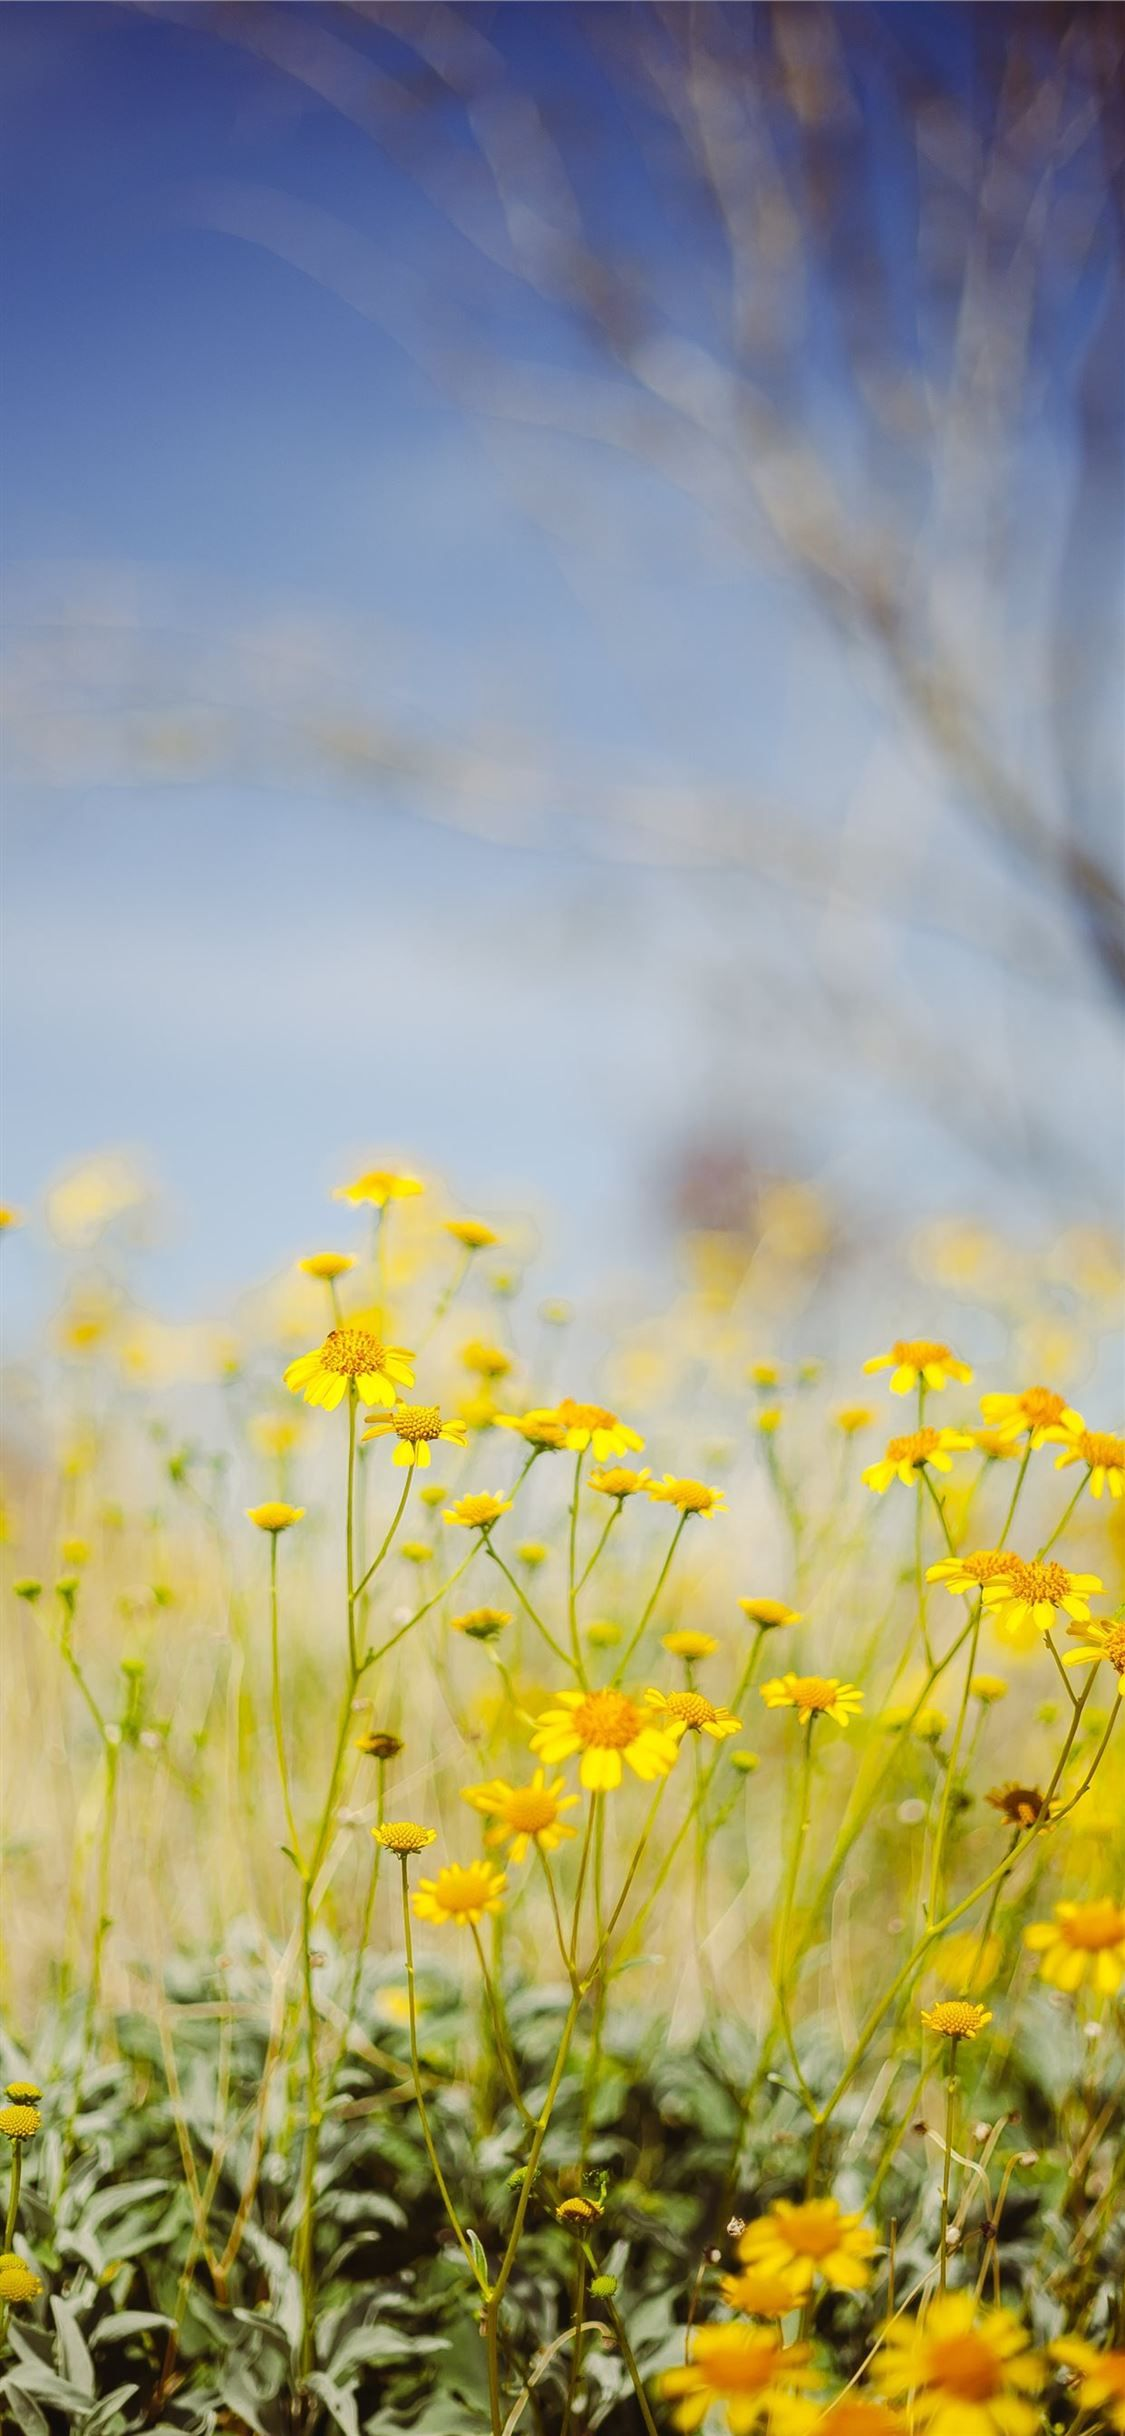 Yellow Flower Field Under Blue Sky During Daytime Nature Iphone11wallpaper In 2020 Flower Field Yellow Flower Wallpaper Yellow Flowers